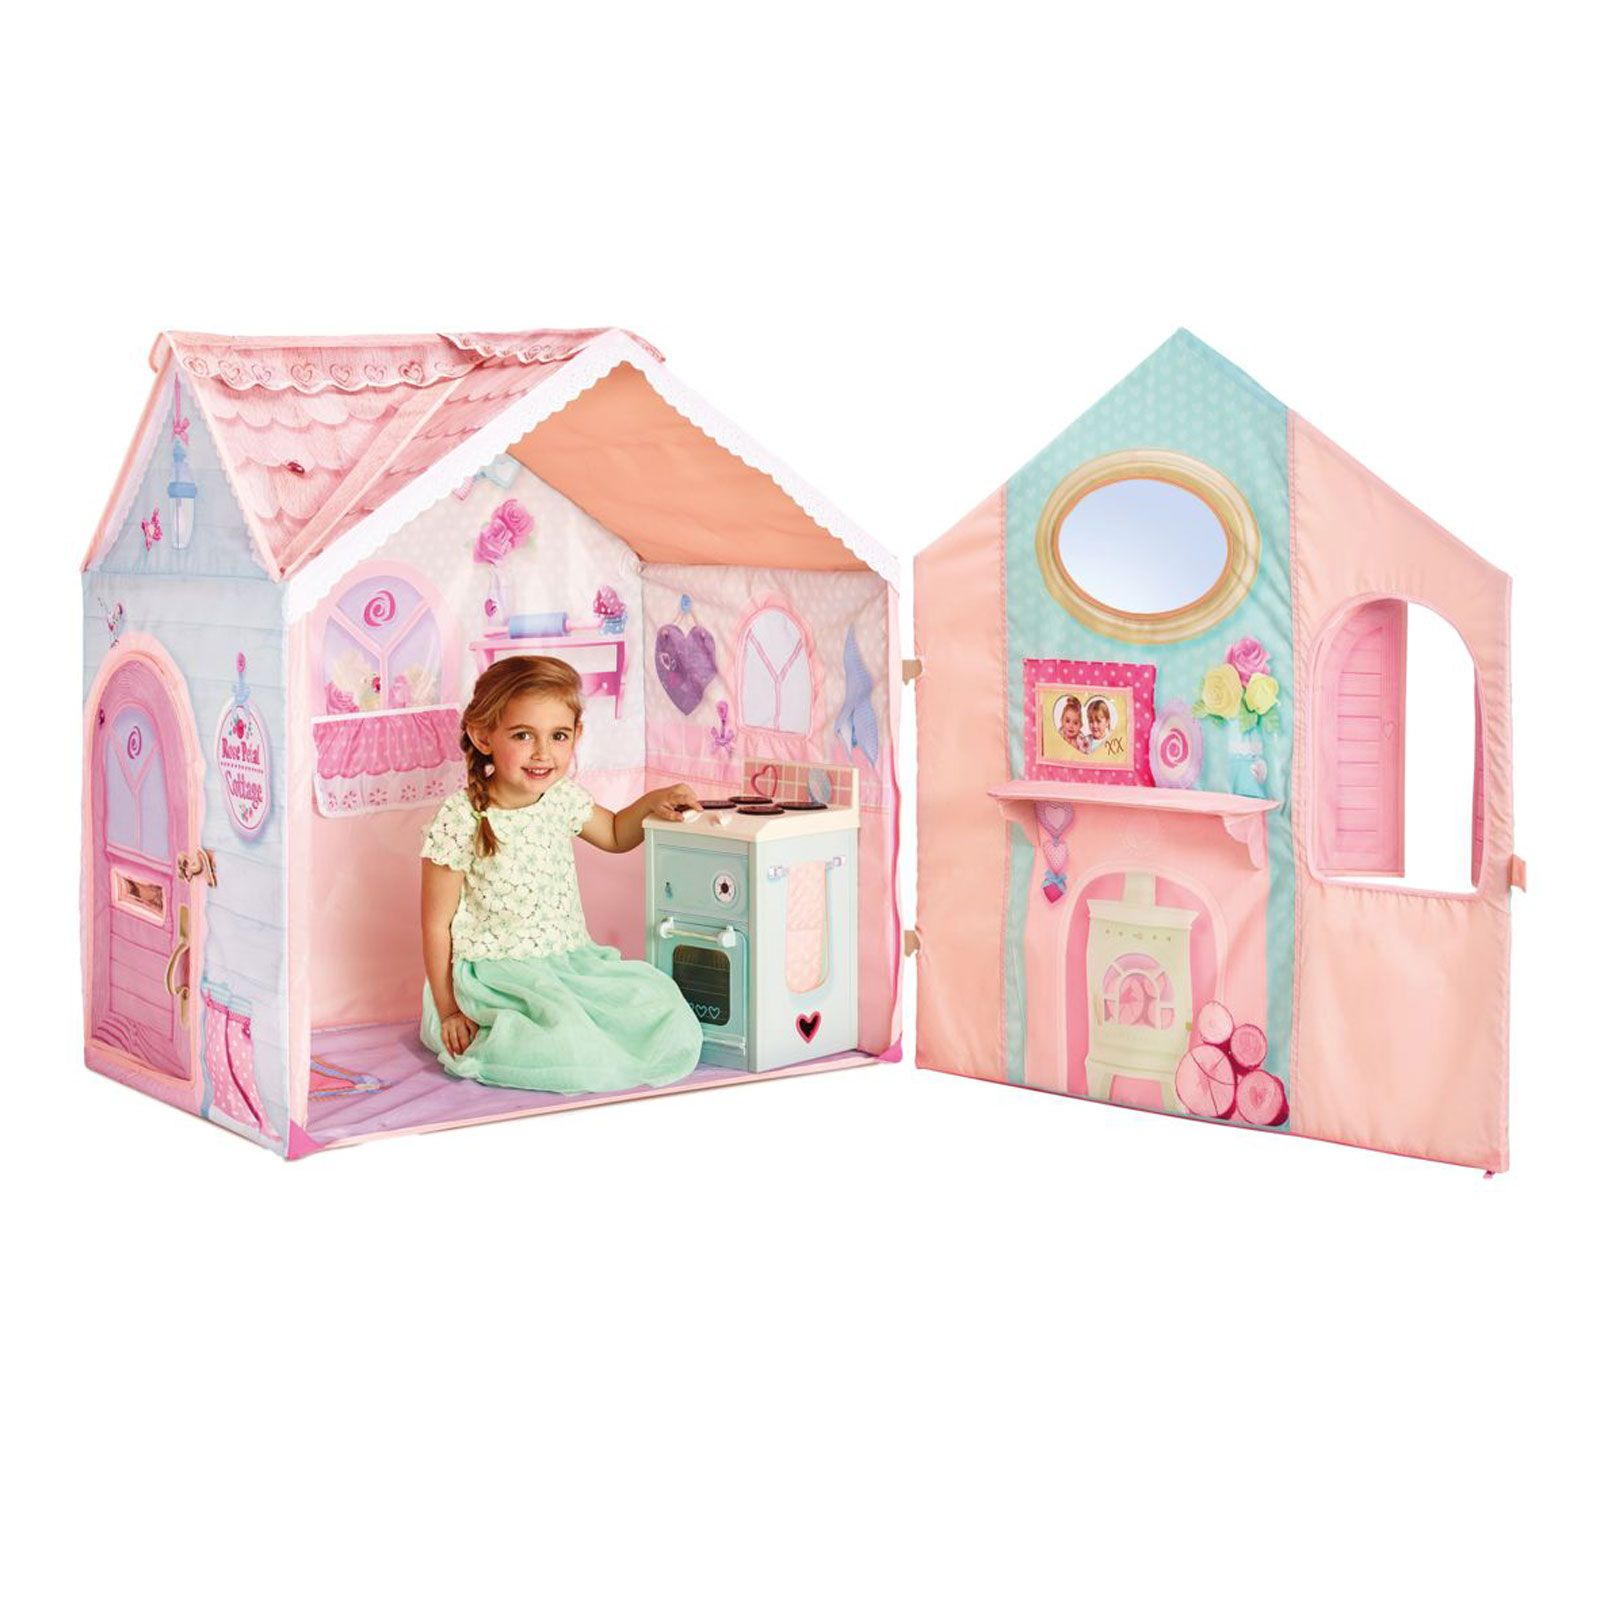 Dream Town Rose Petal Cottage Playset New Playhouse Ebay